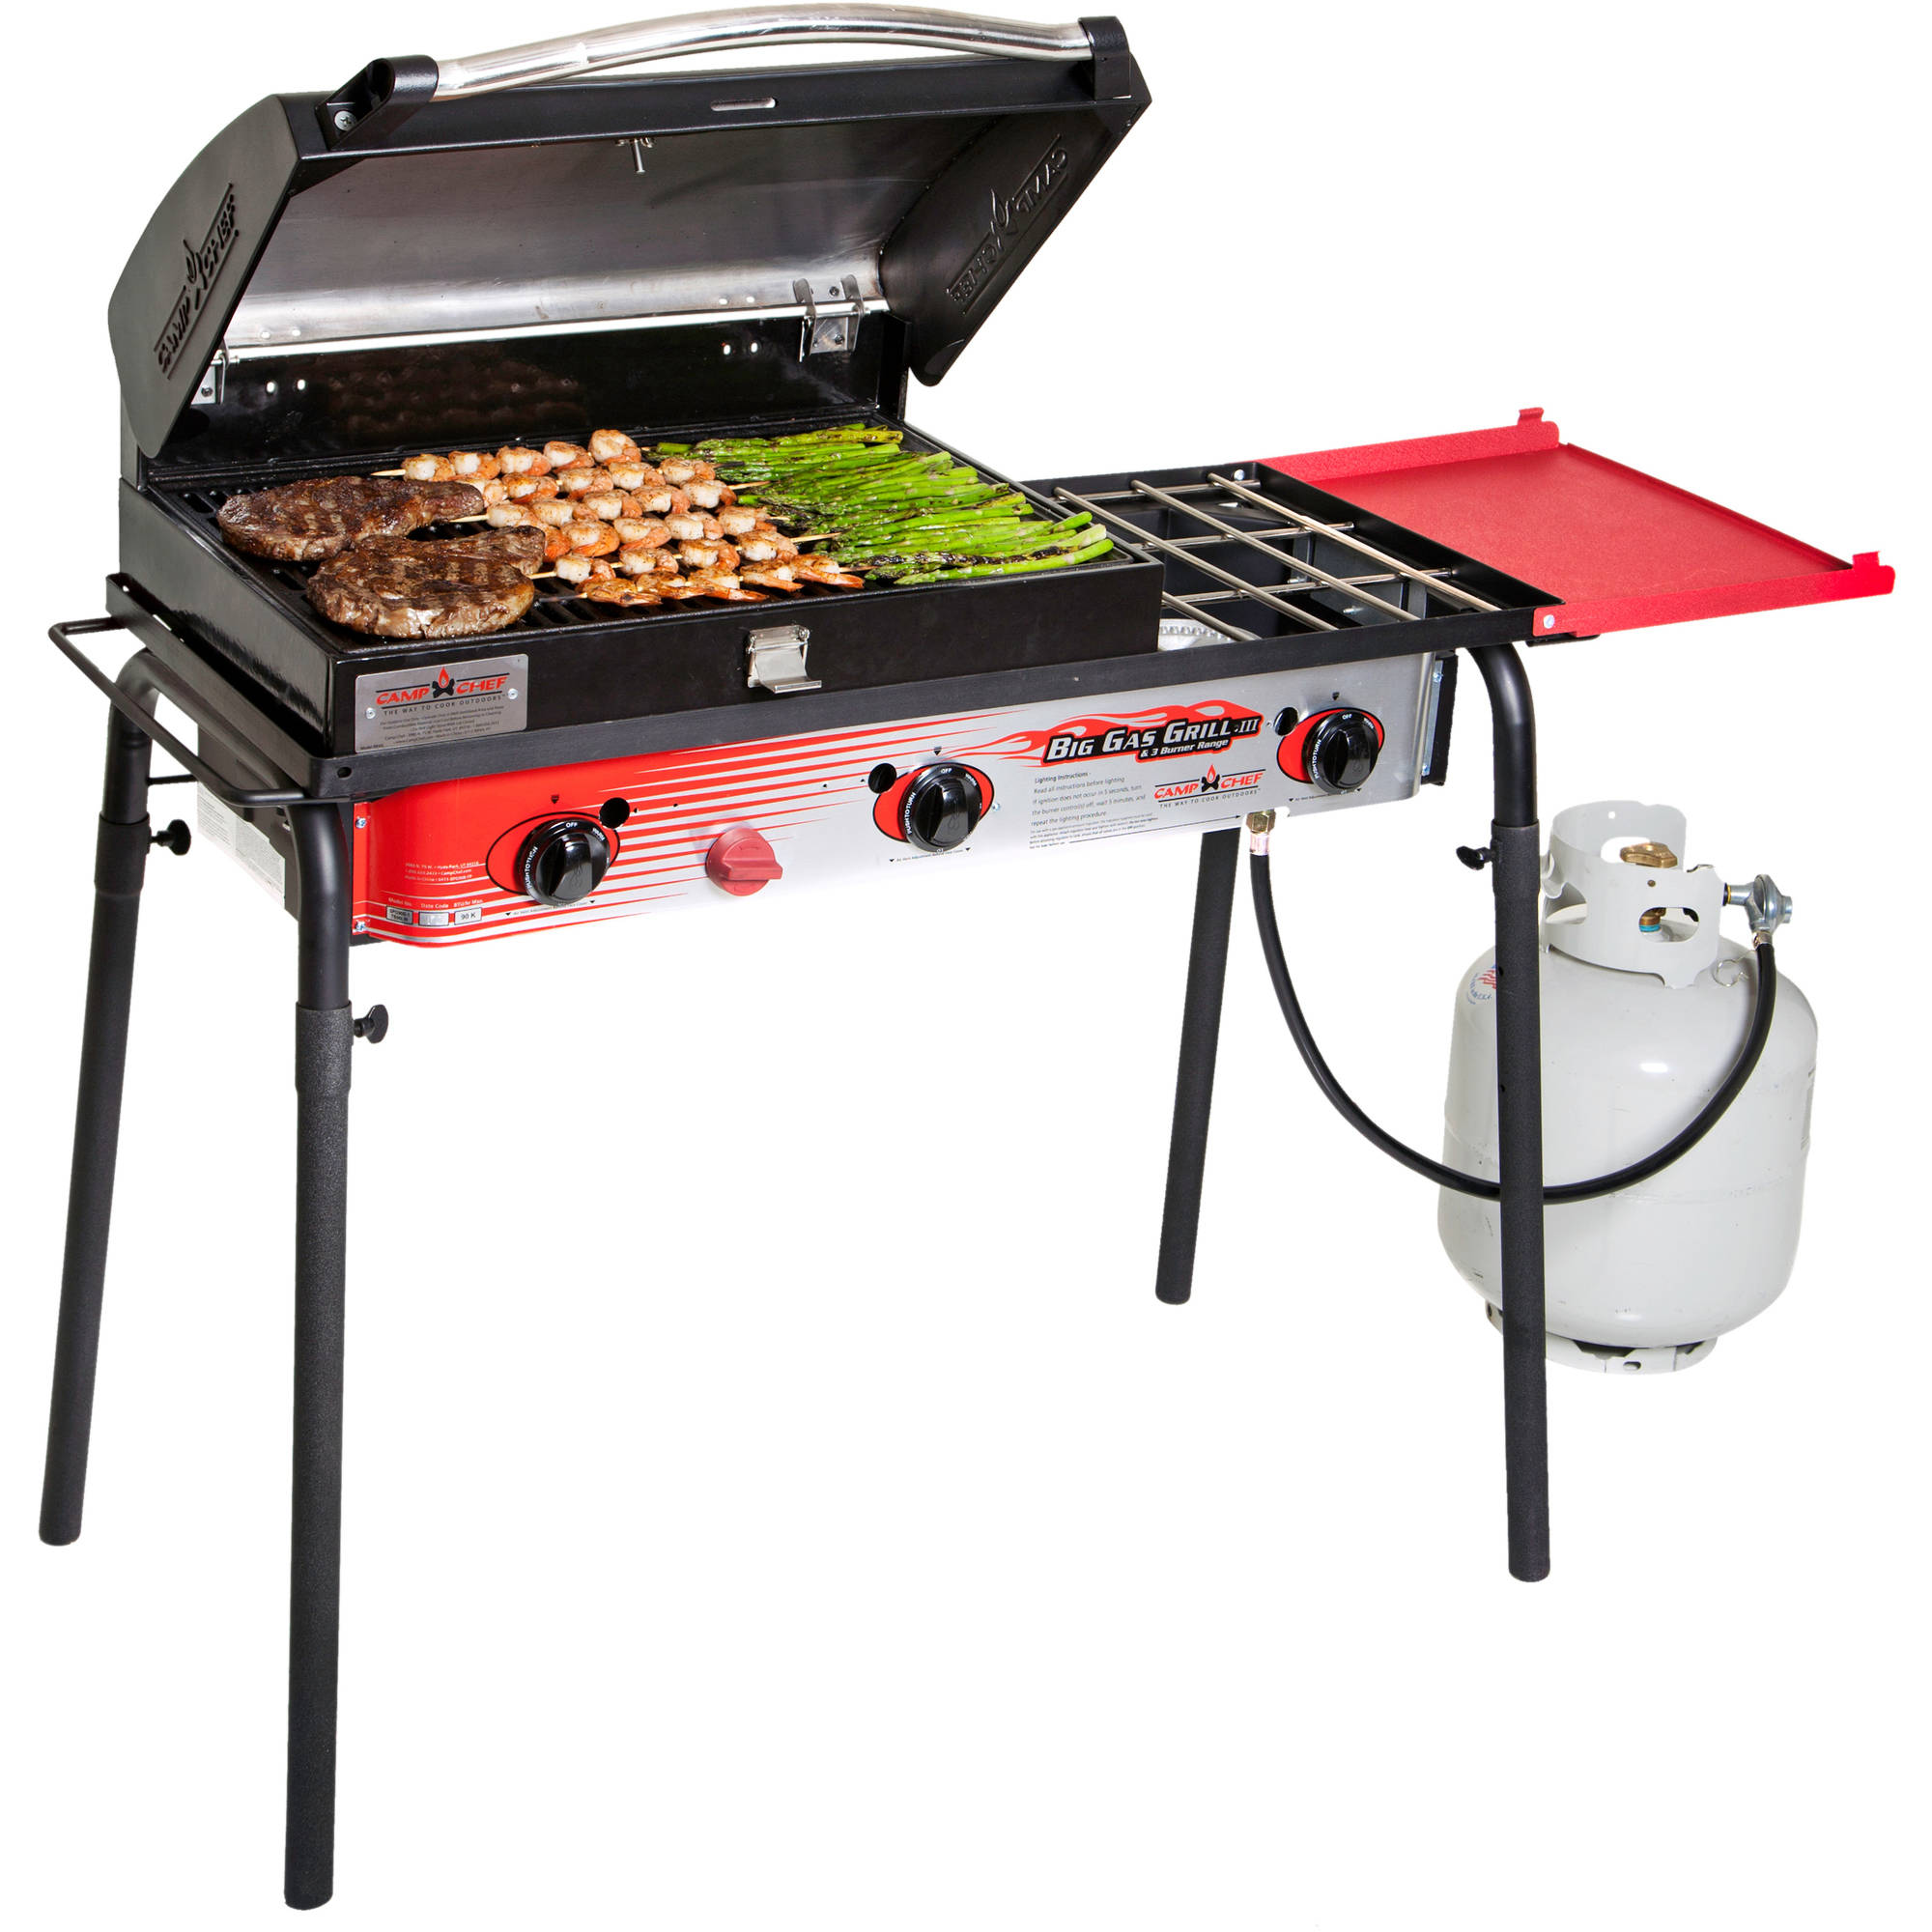 3X Triple Action Burner camp chef big gas grill 3-burner - walmart